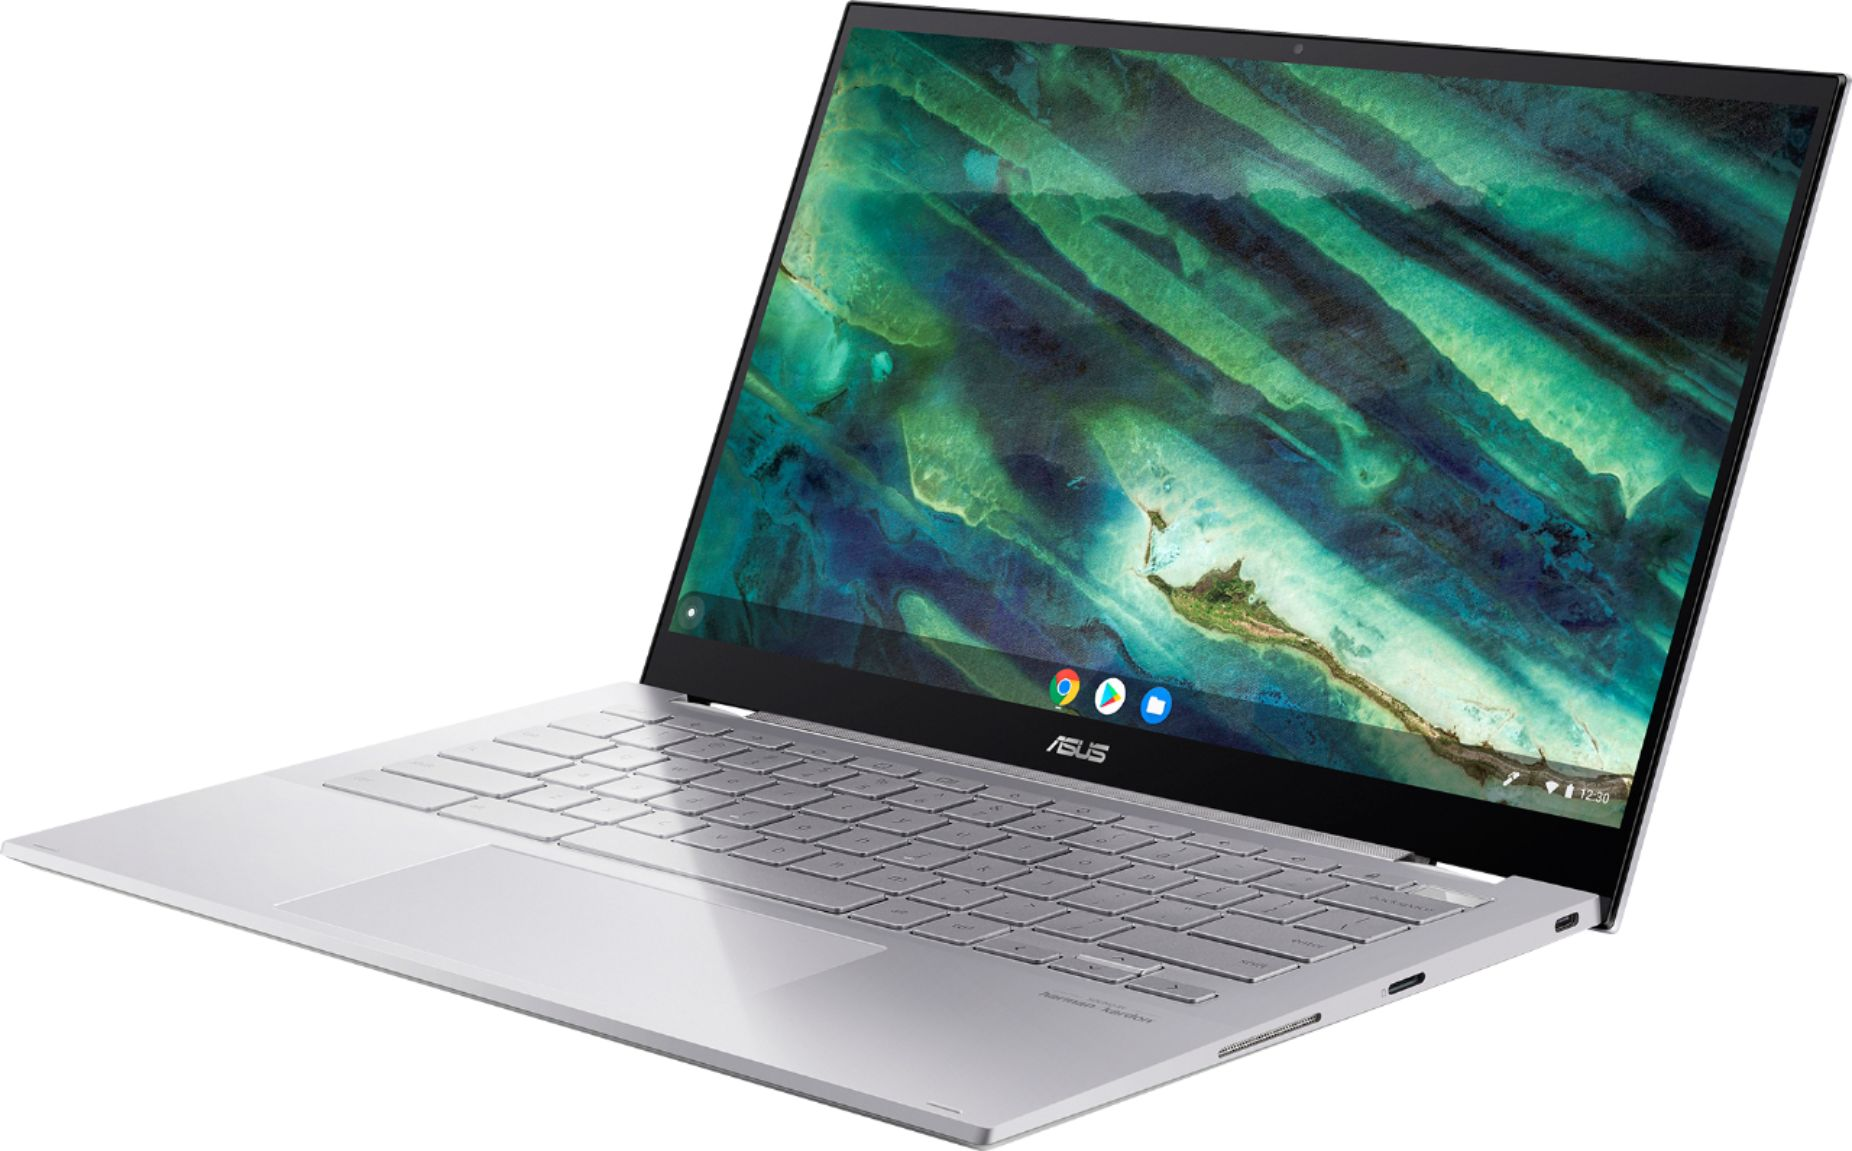 "Left Zoom. ASUS - Chromebook Flip C436 14"" 2-in-1 Touchscreen FHD Laptop - Intel Core i3-10110U 8GB 128GB Magnesium-Alloy -Silver - Silver."